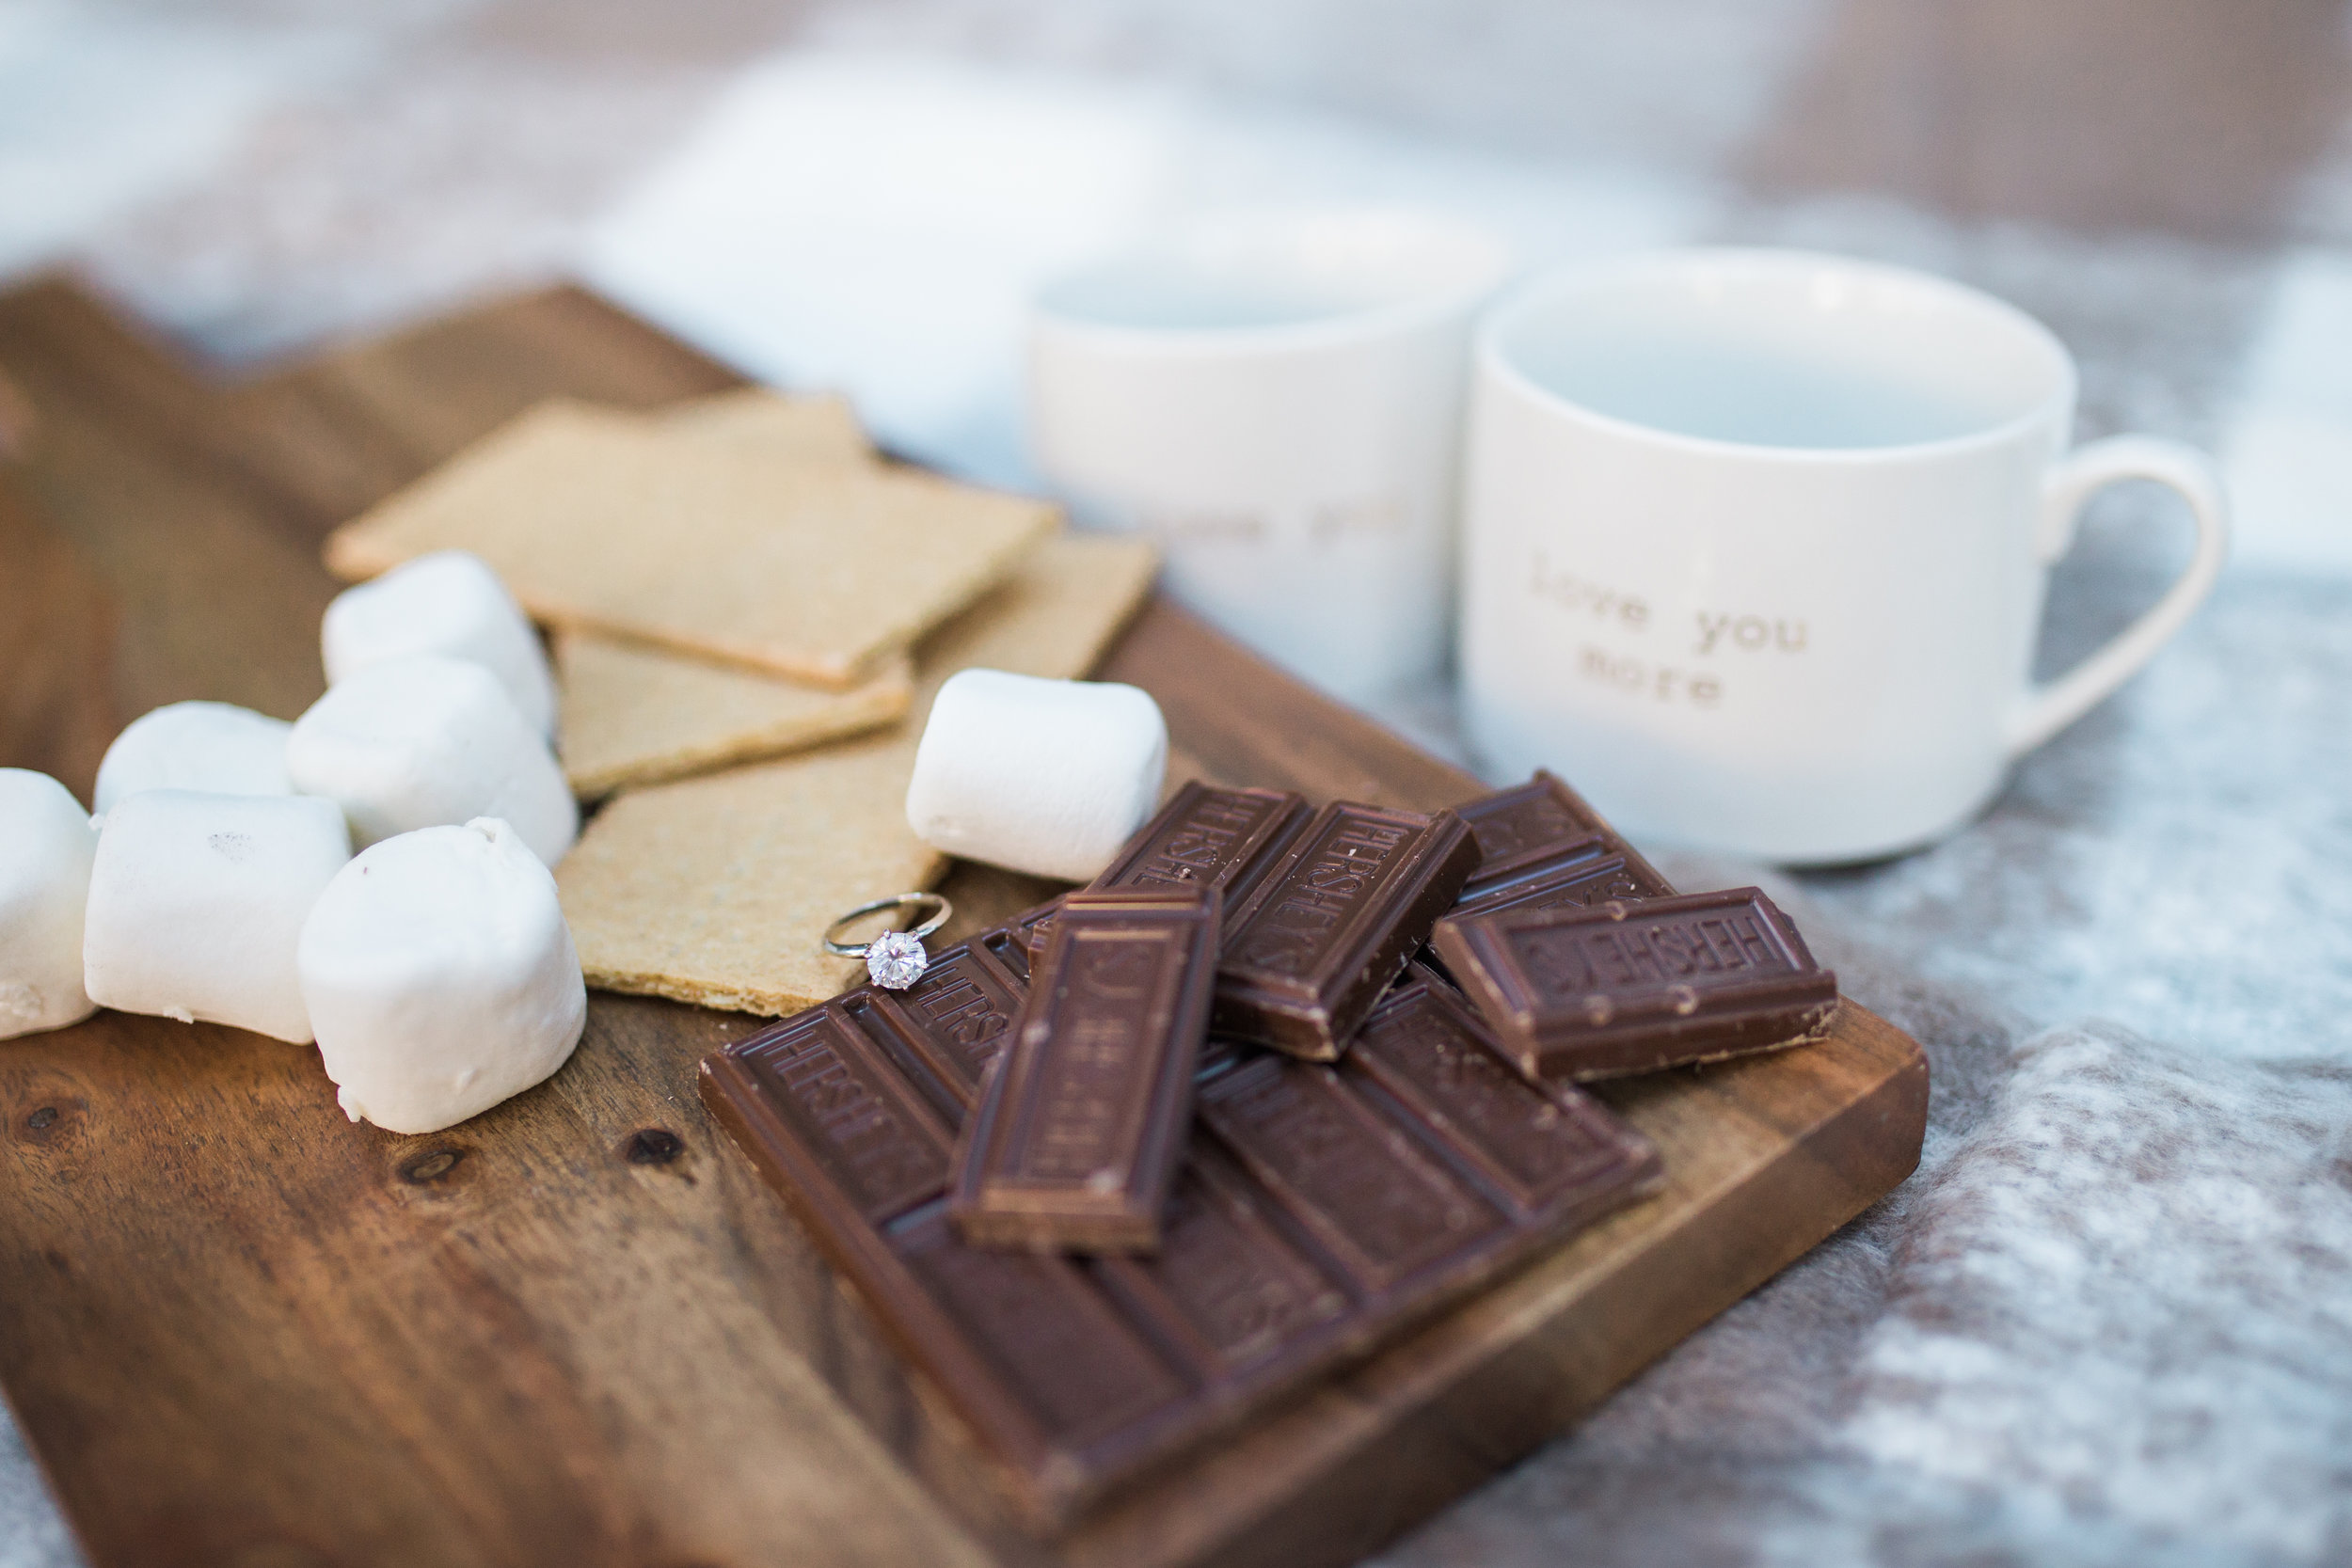 Engagement ring and smores